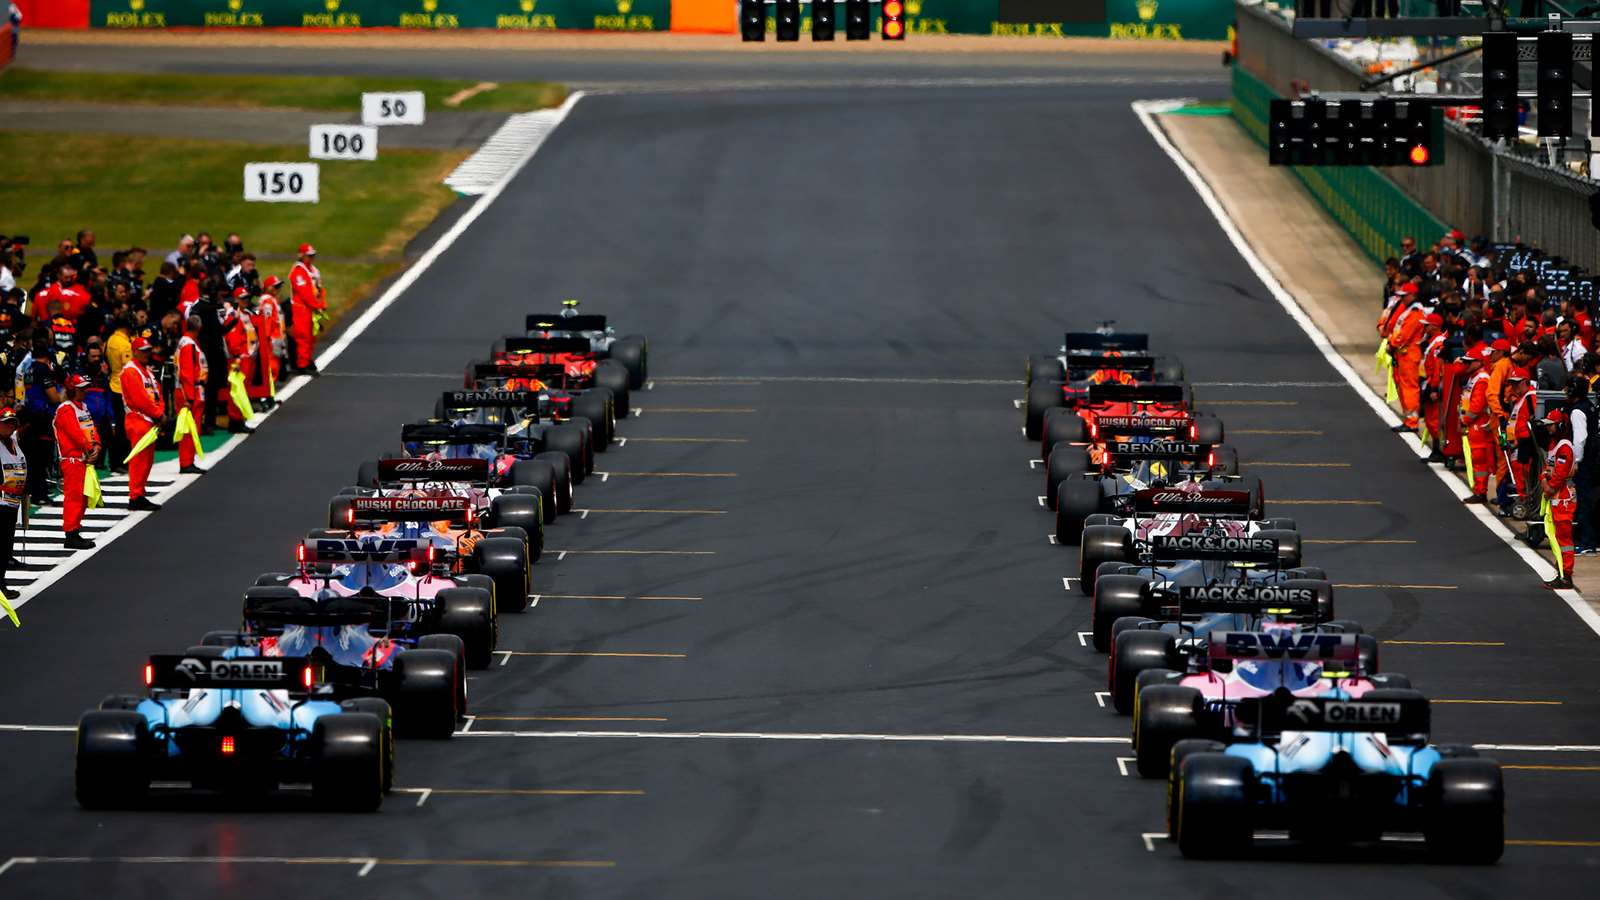 2021 Formula 1 Rules Season With Revised Race Weekends & Practice Sessions